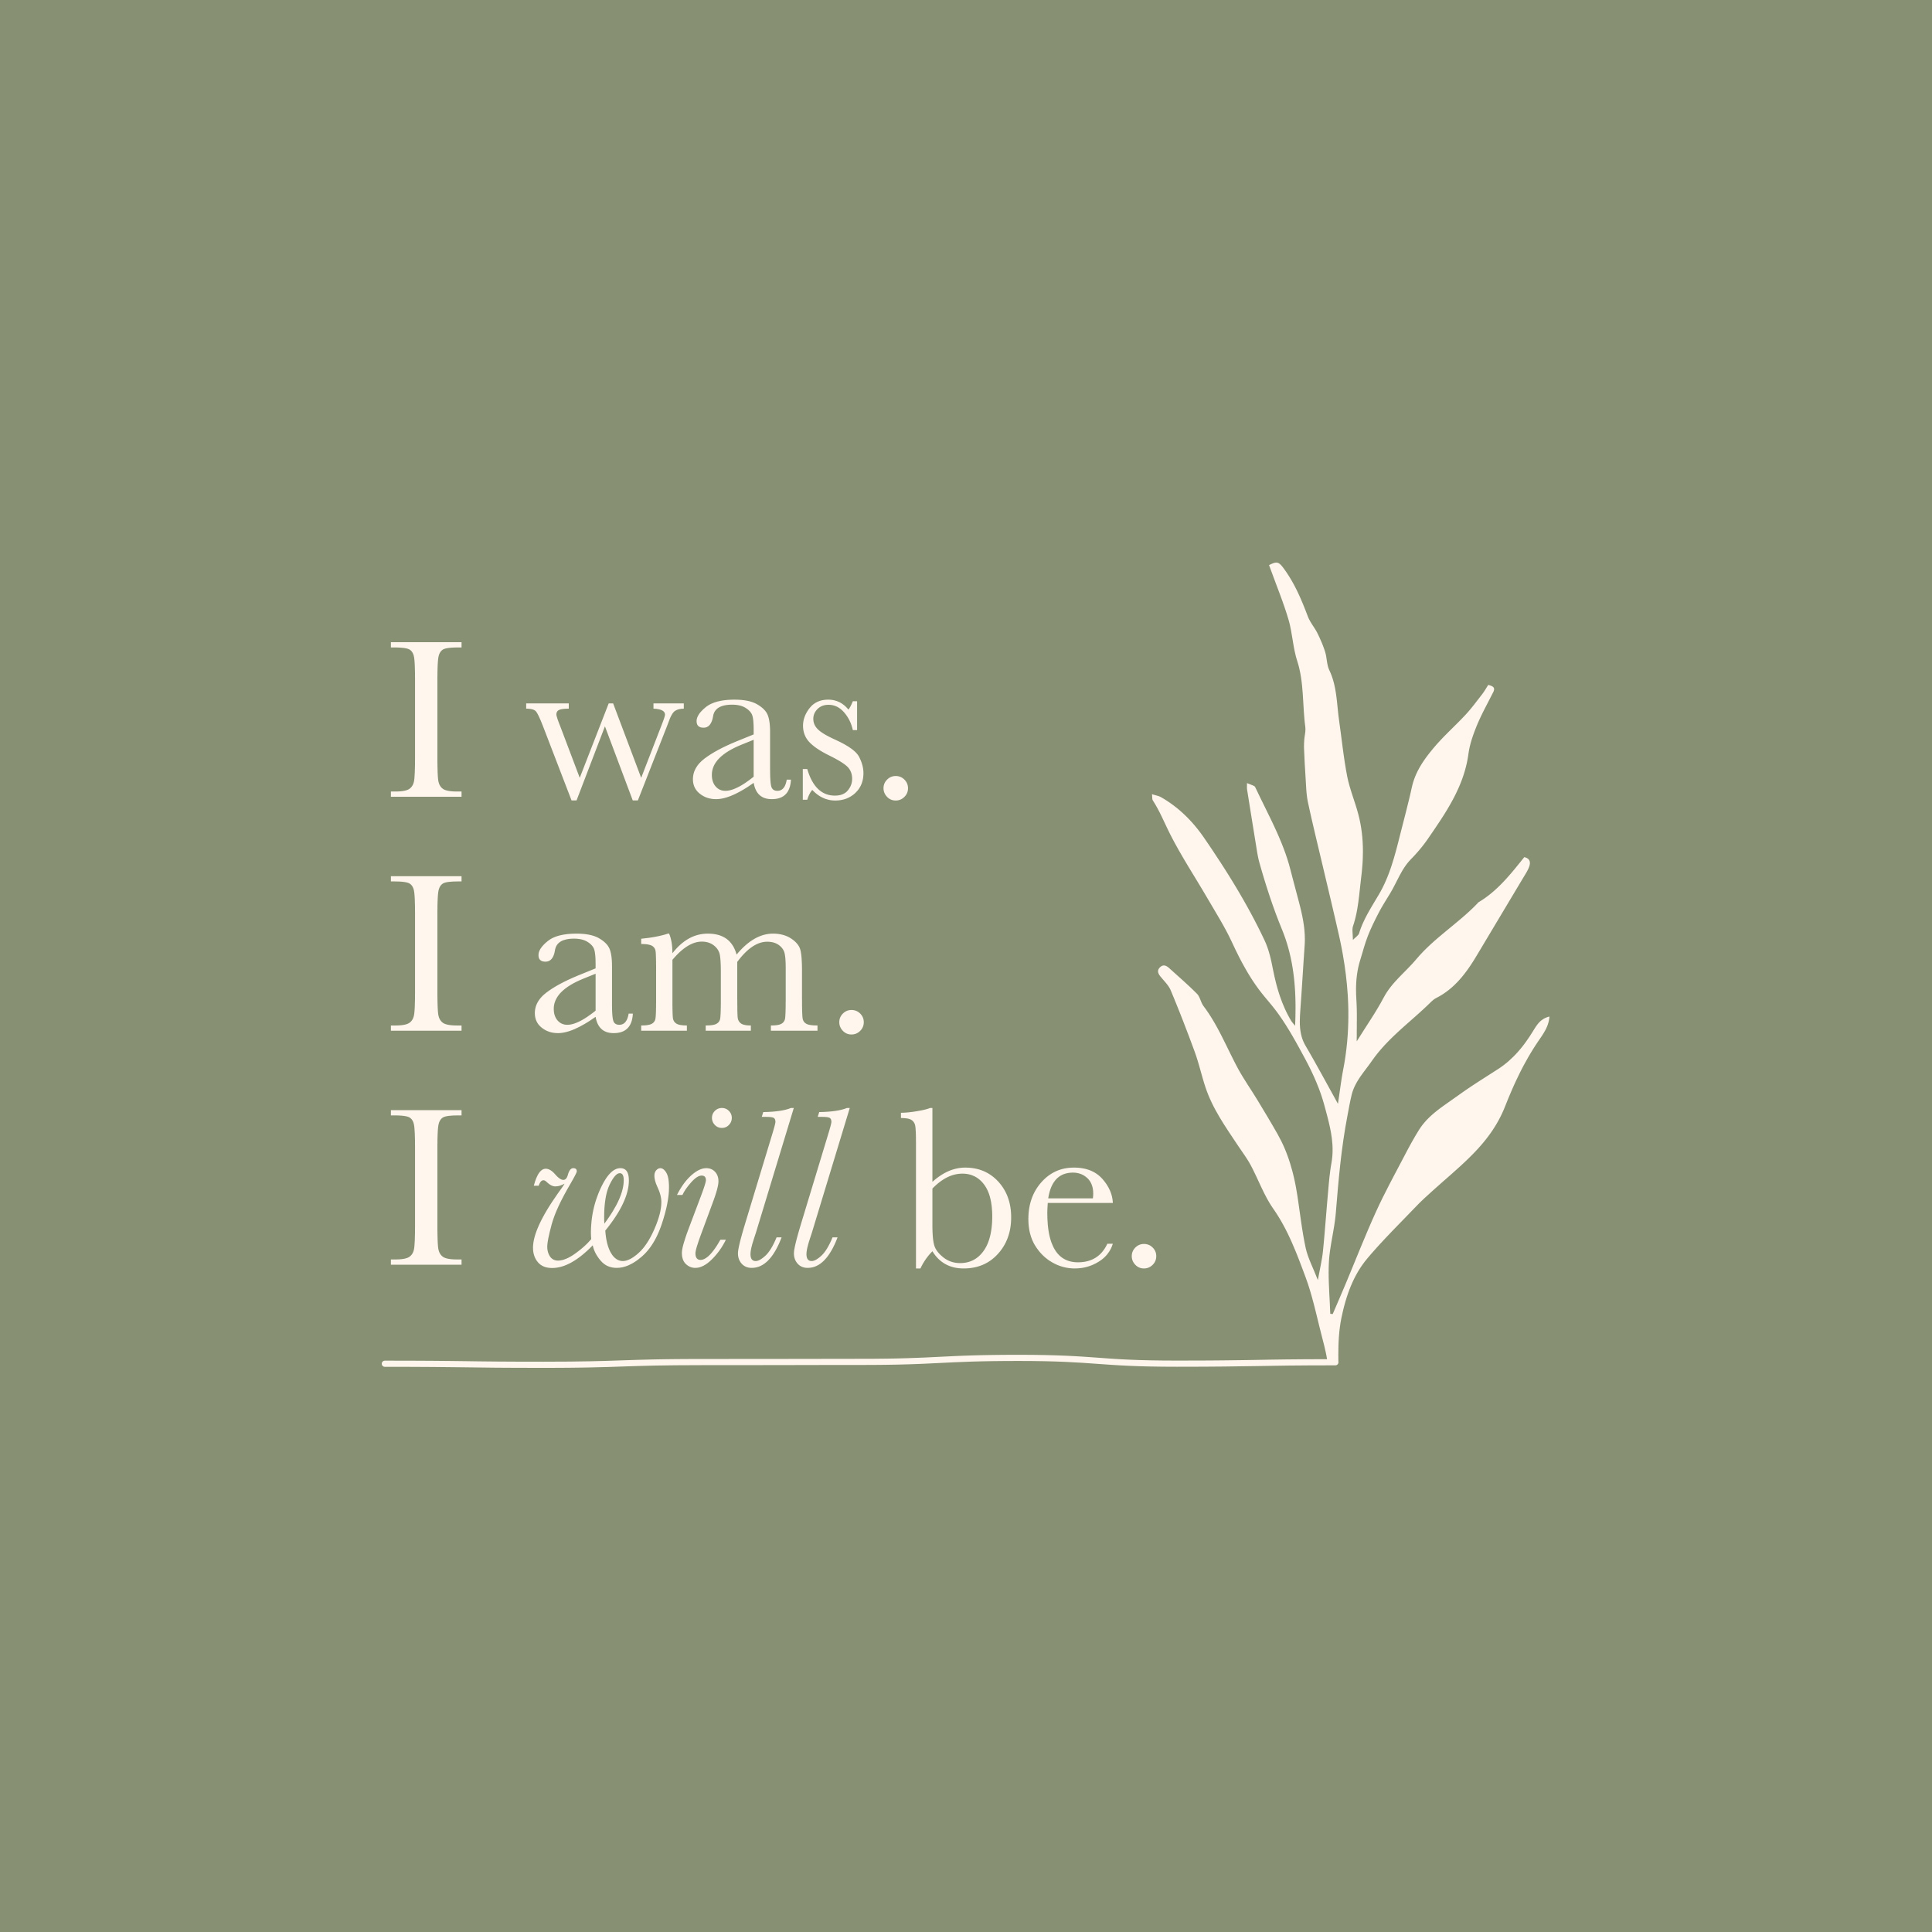 'I was, I am, I will be' mental health and well-being logo